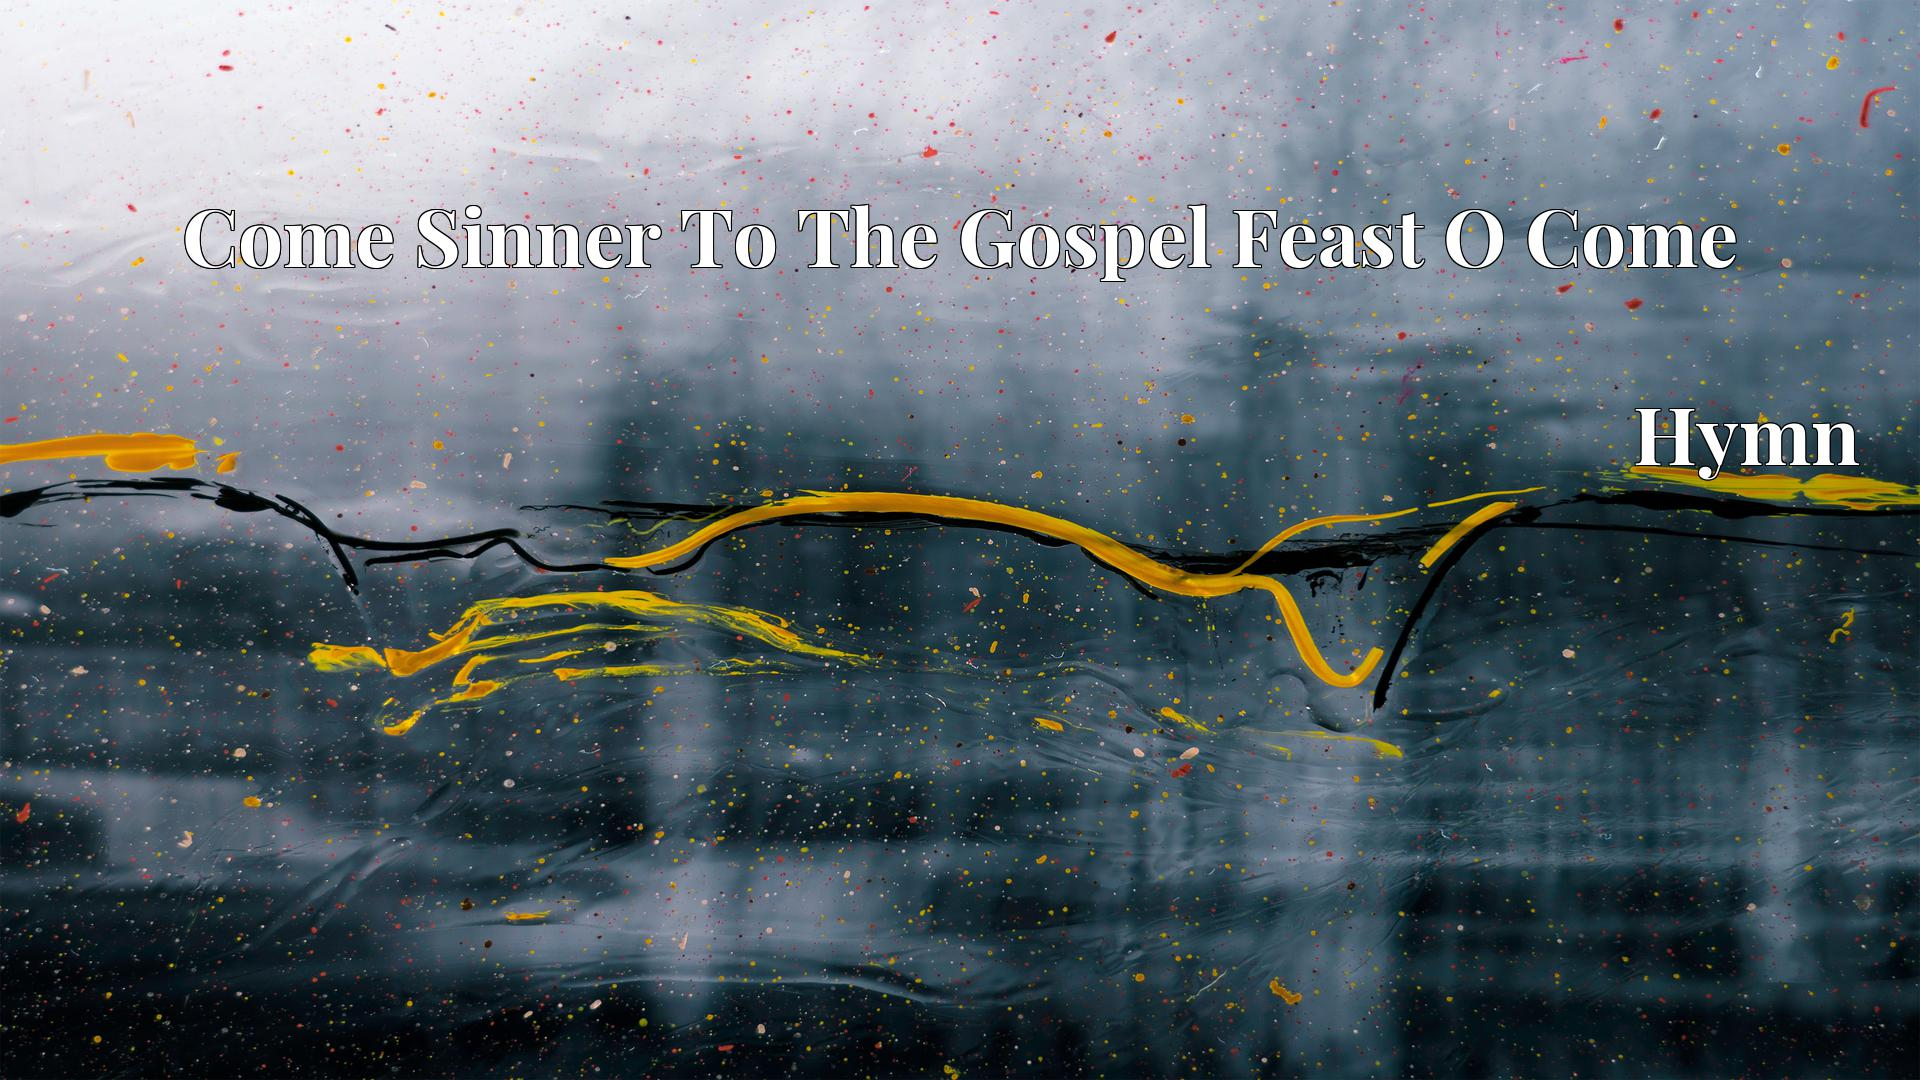 Come Sinner To The Gospel Feast O Come - Hymn